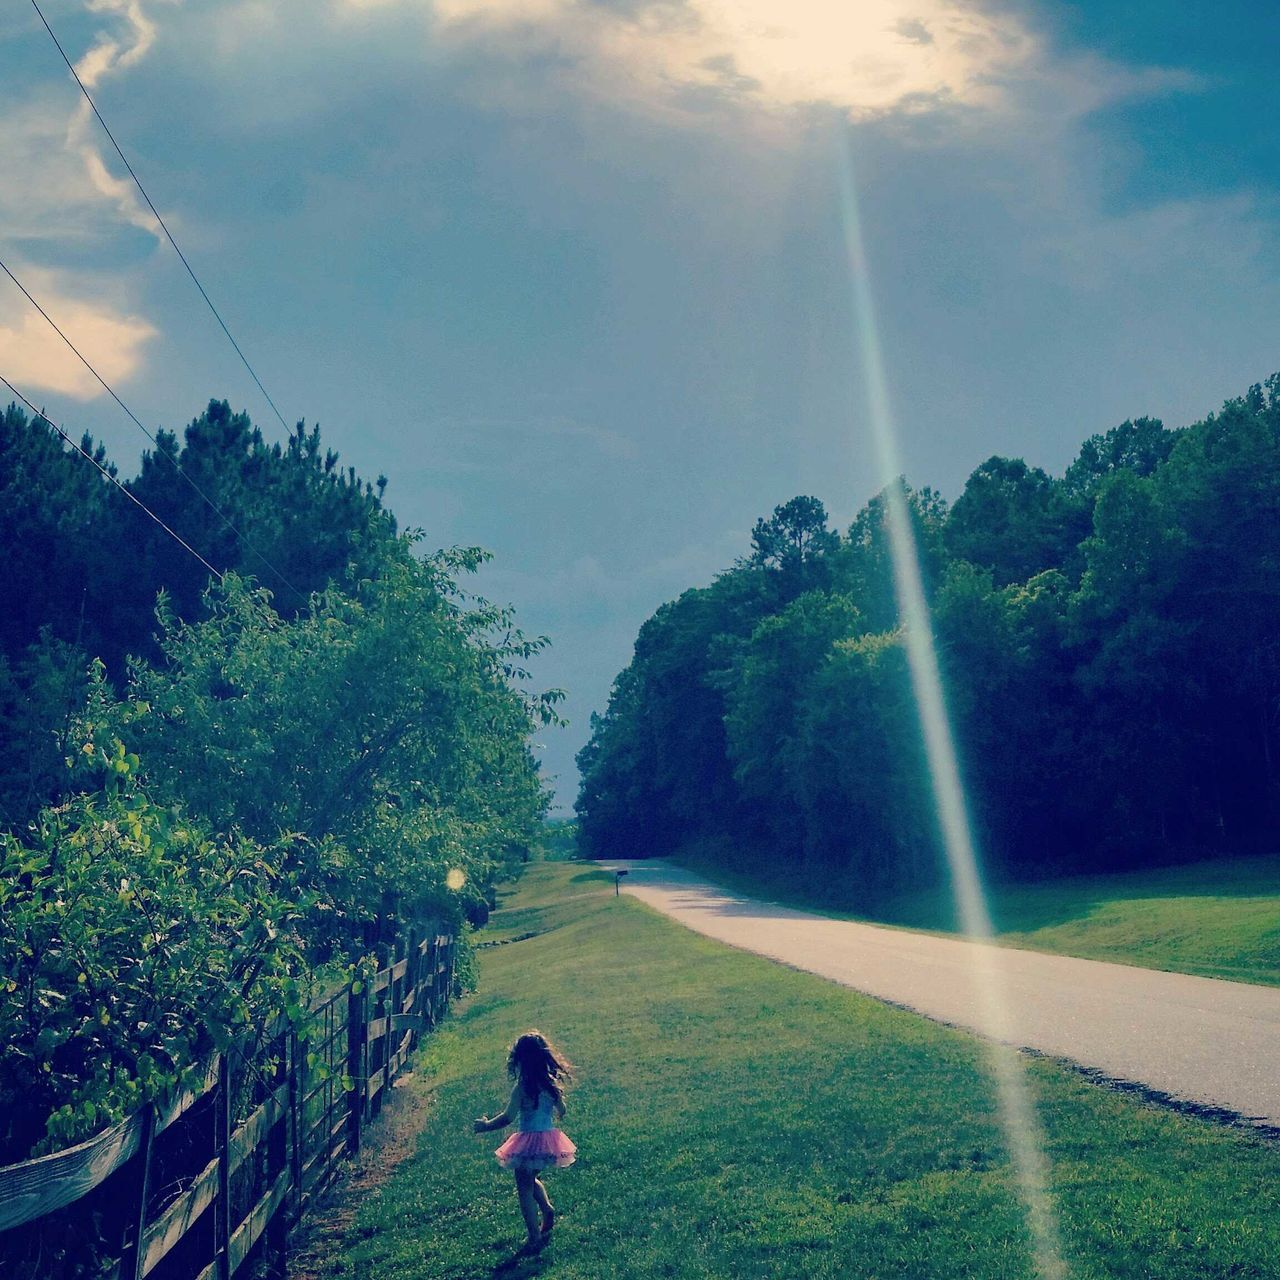 rainbow, tree, nature, outdoors, growth, real people, sky, motion, day, double rainbow, one person, beauty in nature, spraying, grass, landscape, scenics, water, people